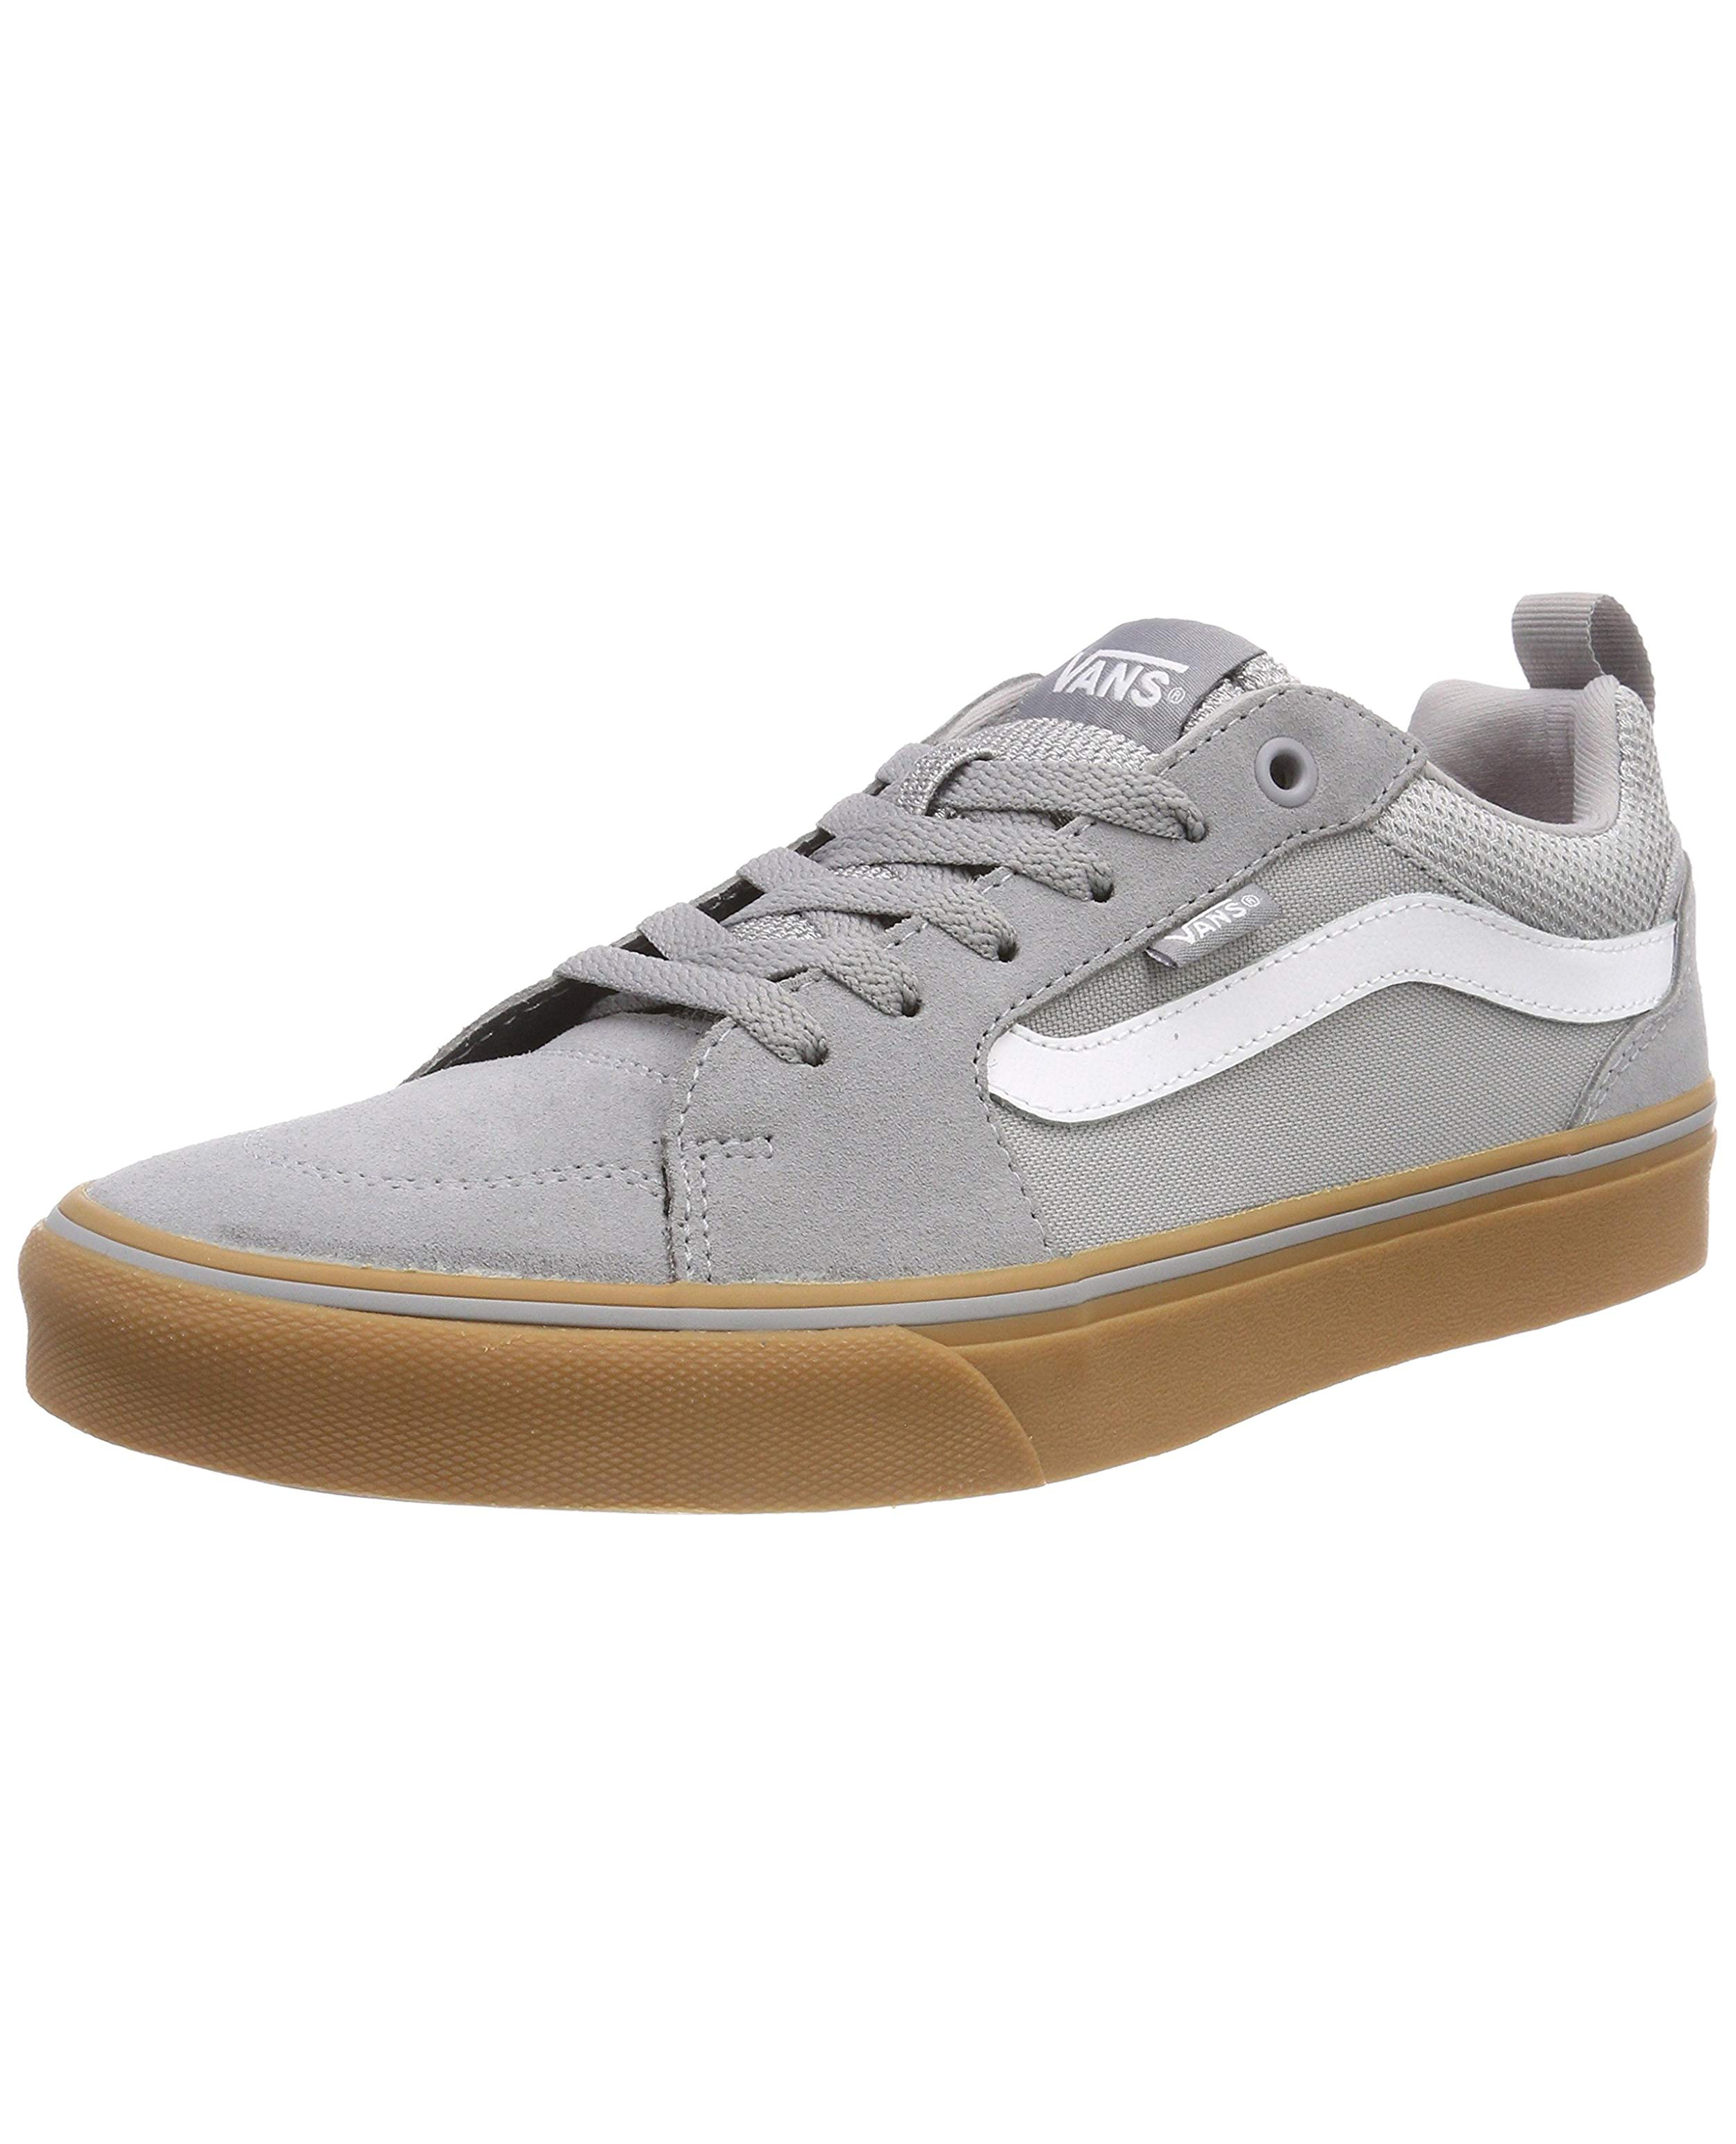 b4ad5d4ef Click on the Image to Enlarge. More Details. These stylish VANS Filmore ...